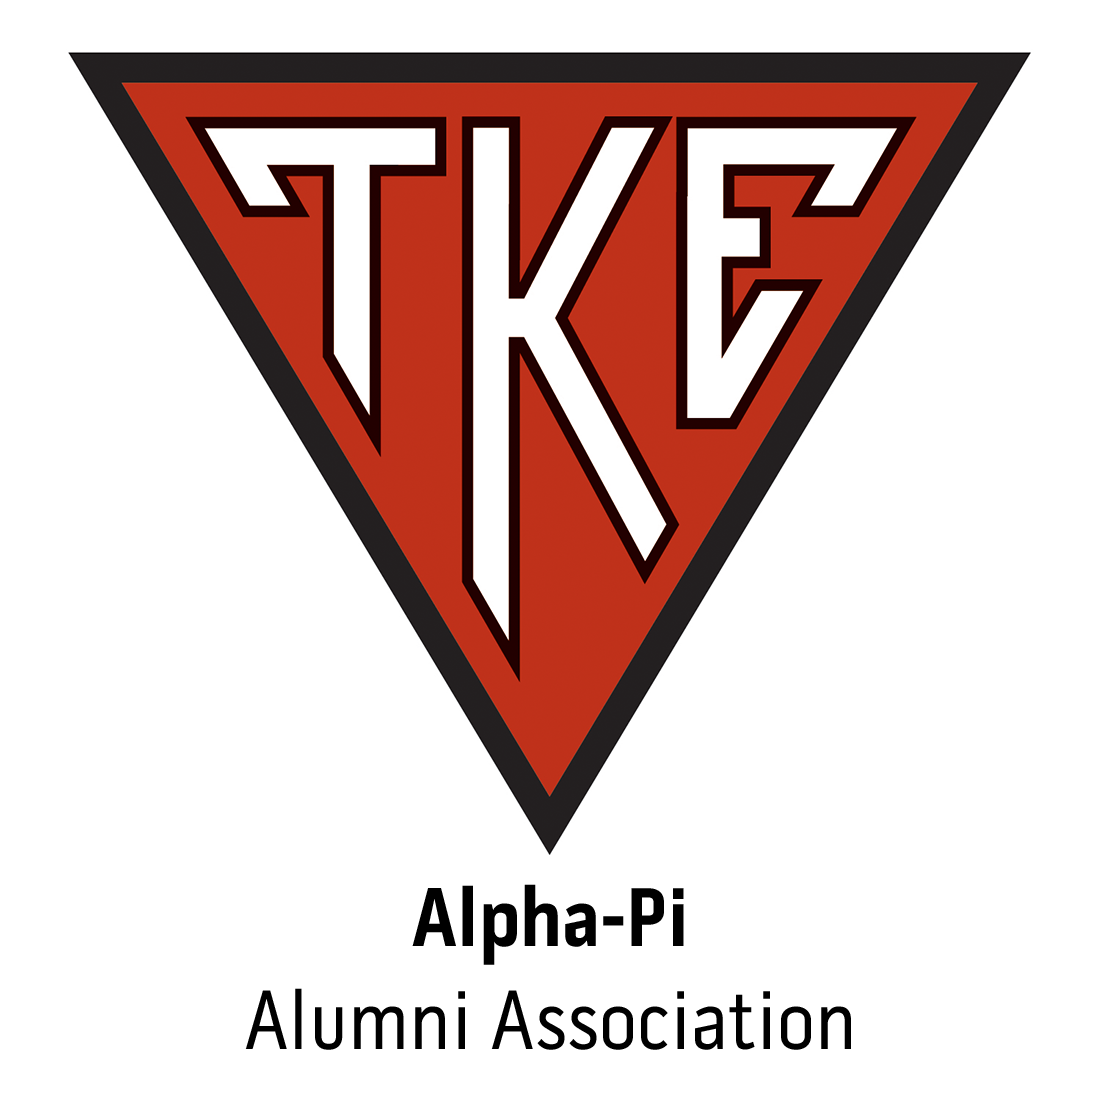 Alpha-Pi Alumni Association at George Washington University